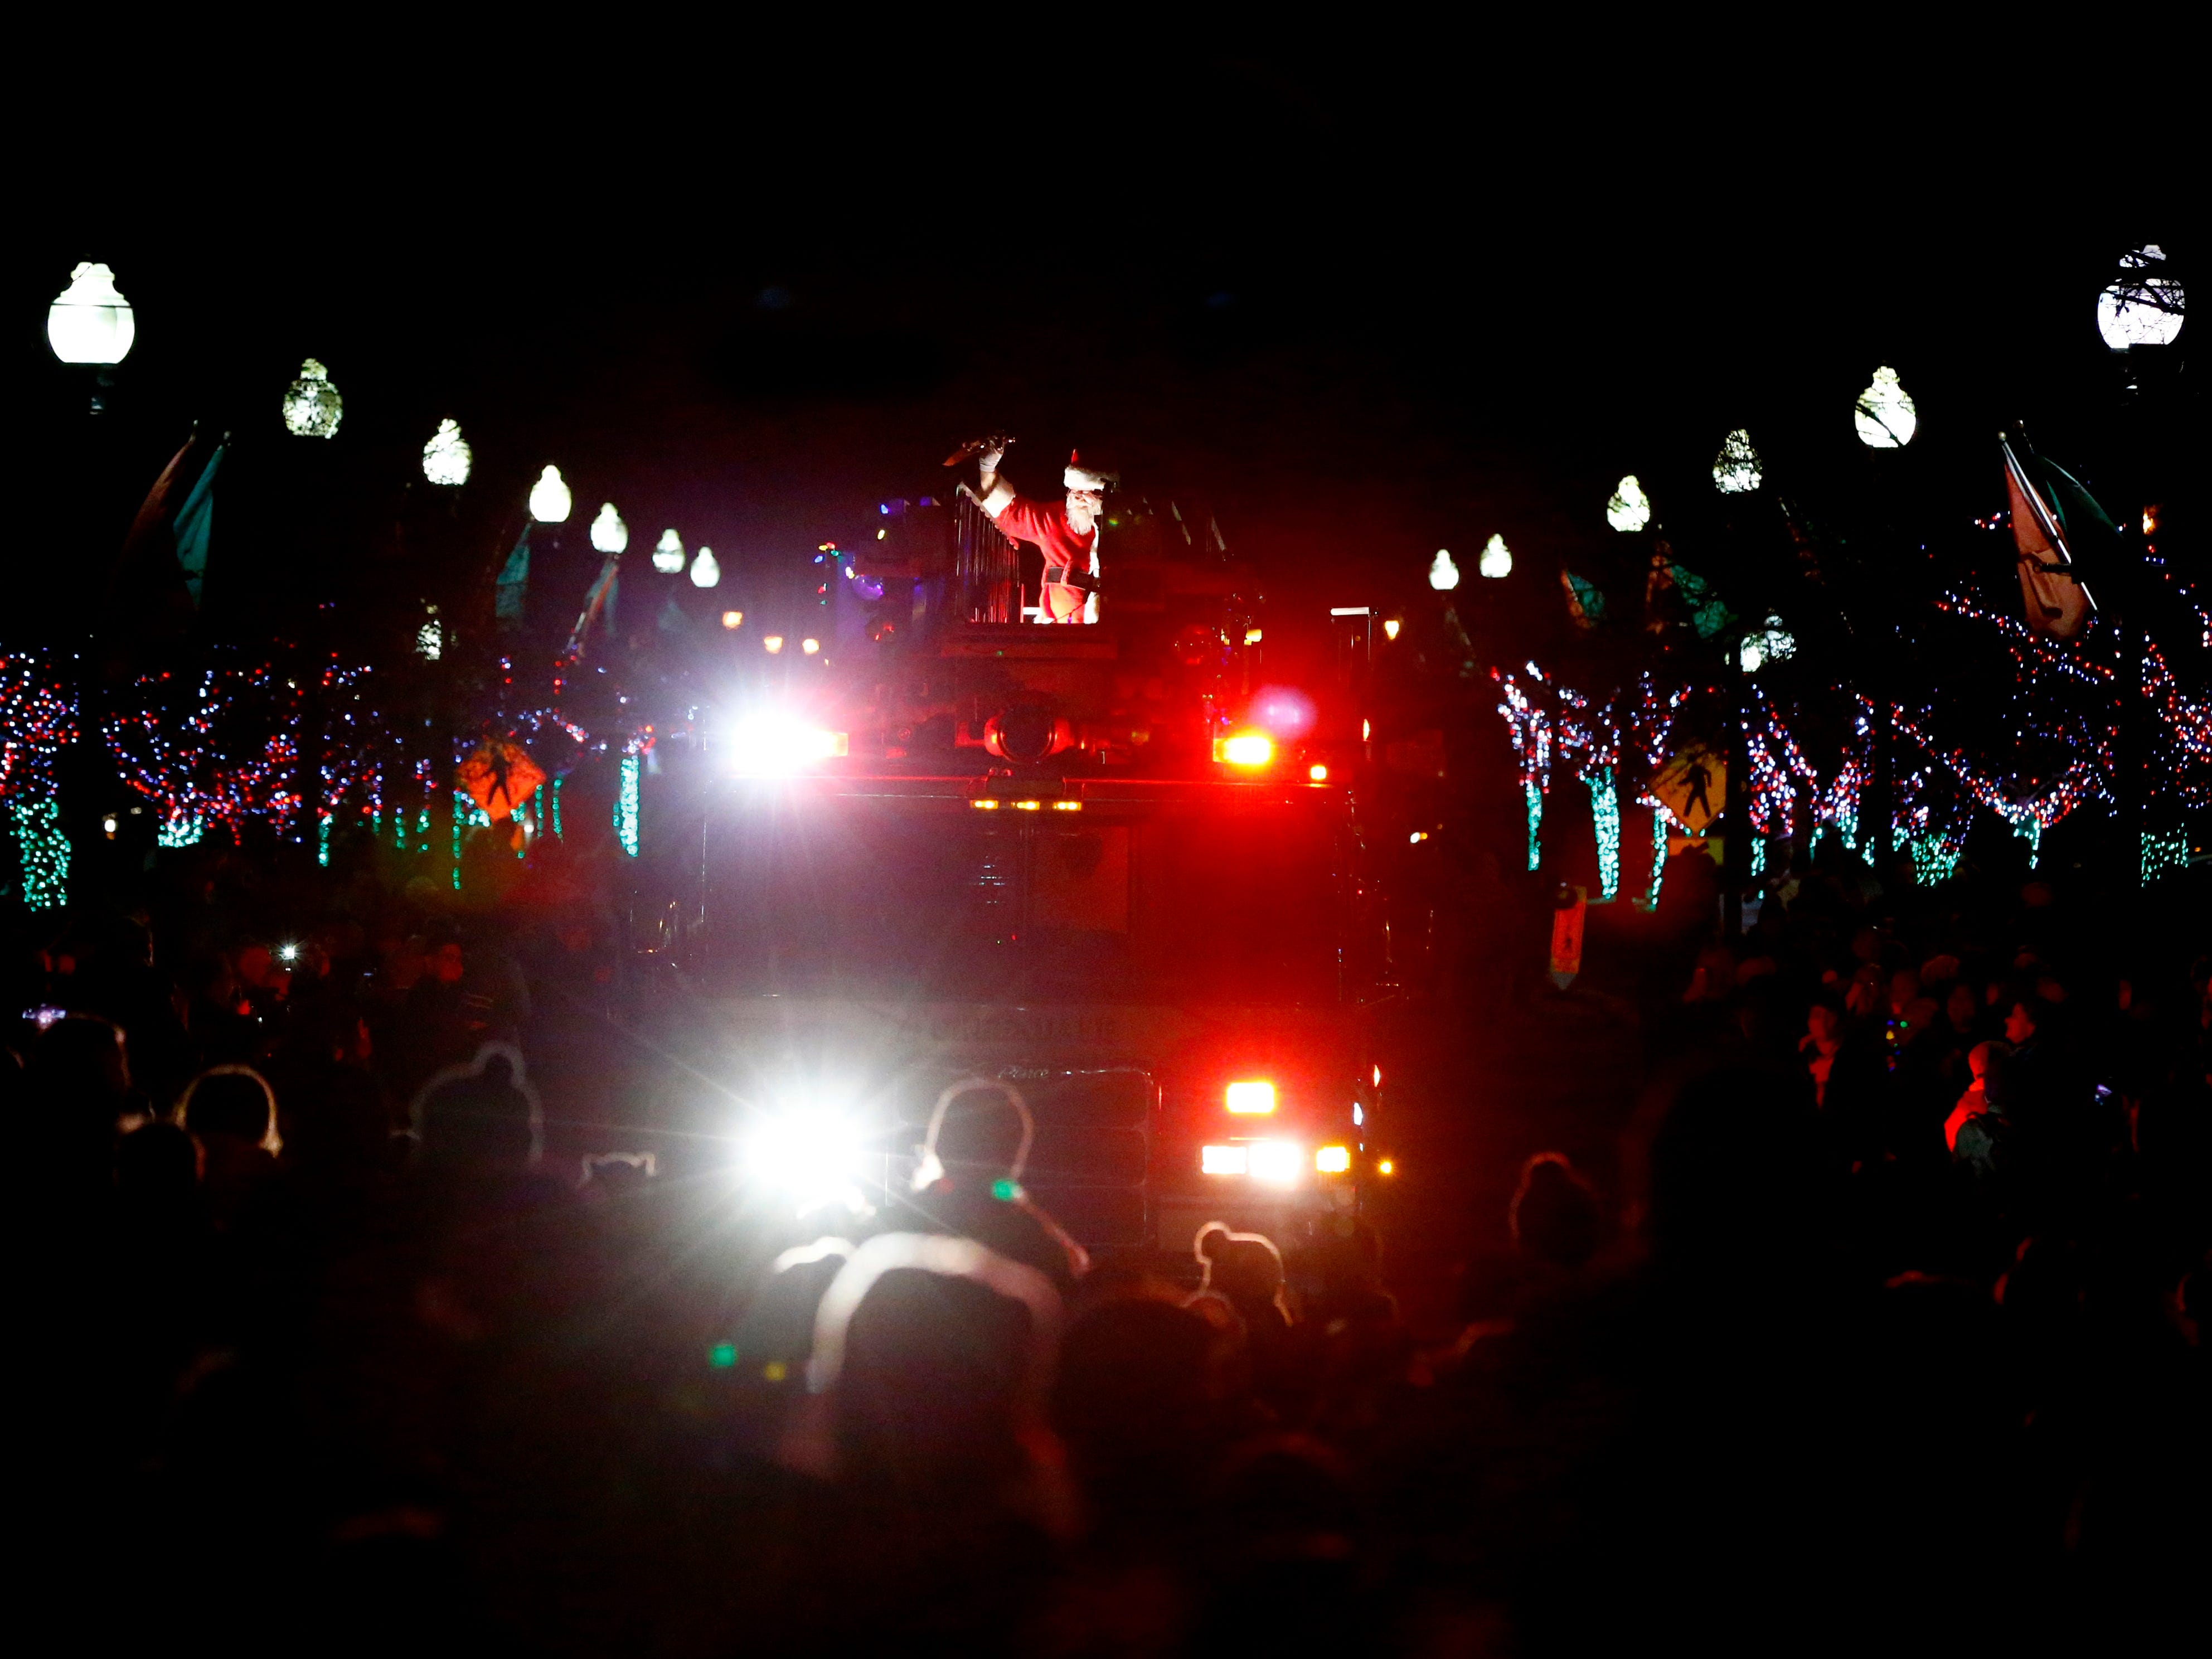 A special guest arrives atop a fire truck after thousands of lights illuminated as part of Greendale's annual Tree Lighting in front of Village Hall on Nov. 23.